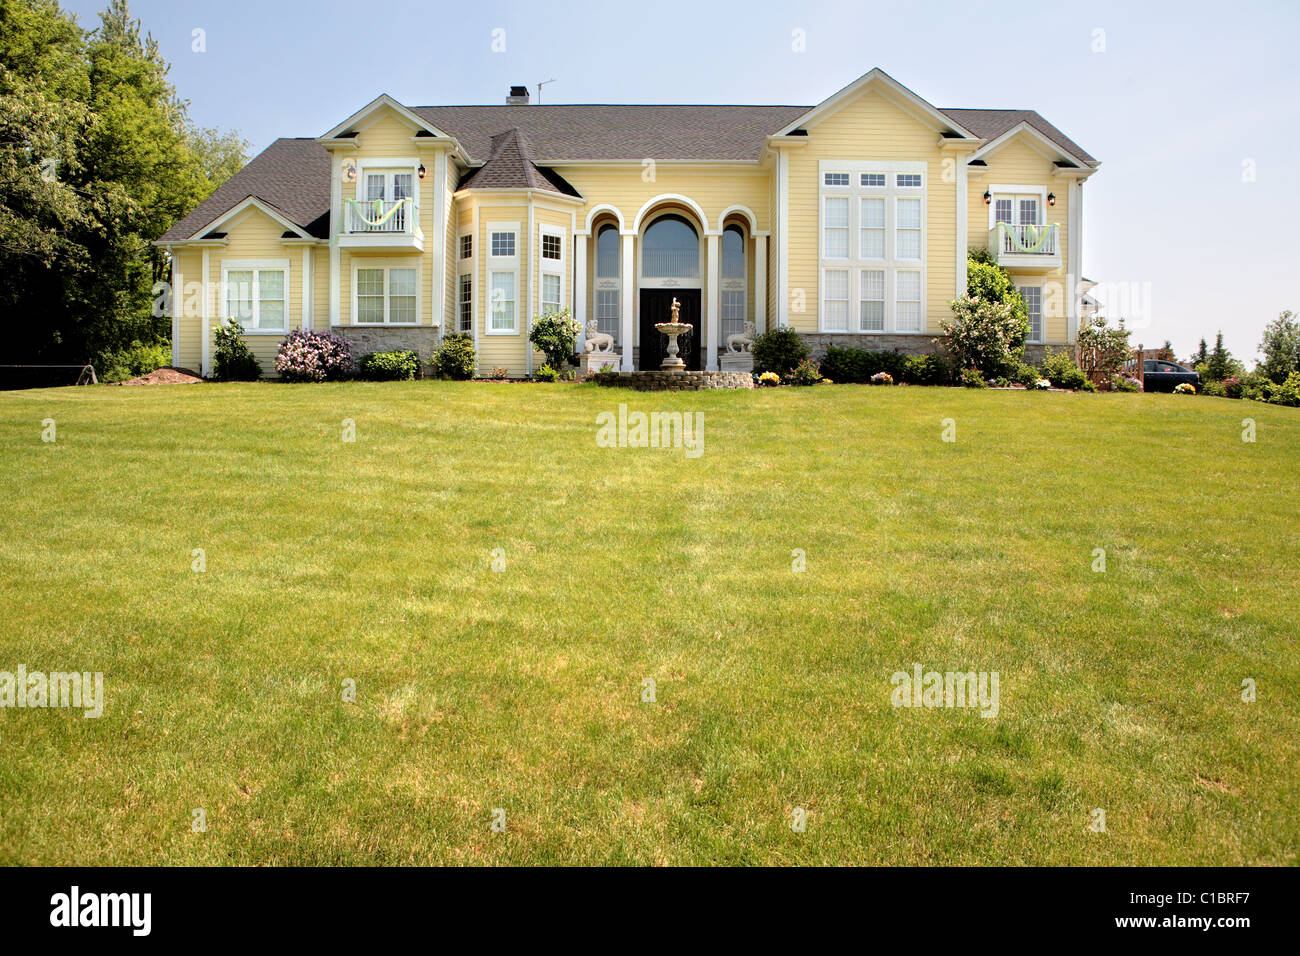 House manor mansion midwest illinois america private grass for Housse illinois